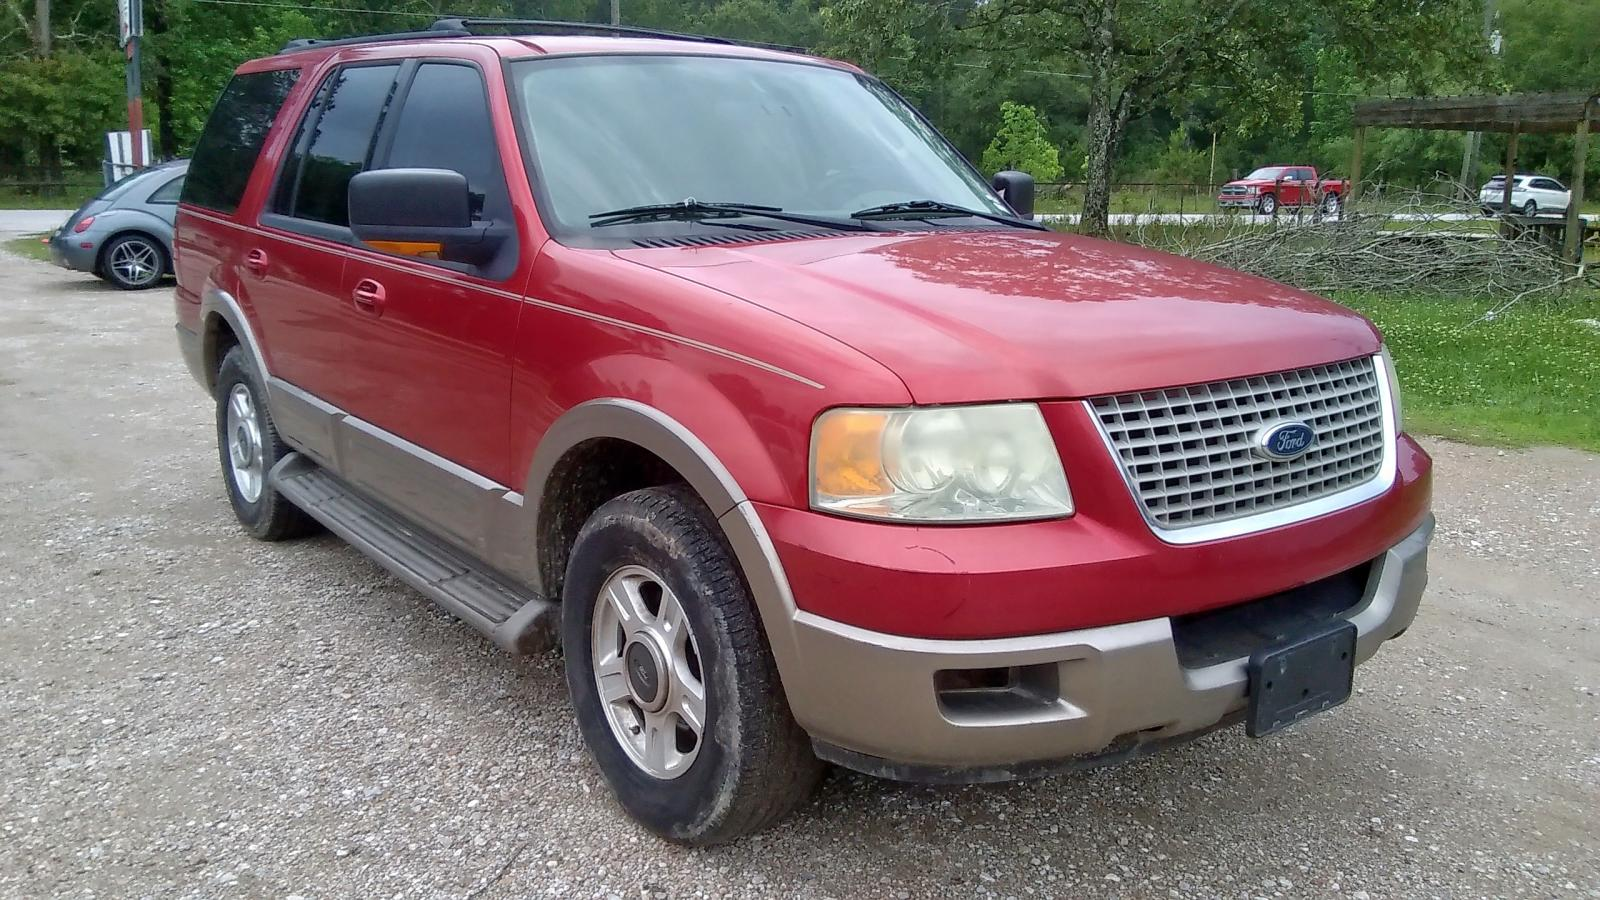 1FMFU17L23LC48298 - 2003 Ford Expedition 5.4L Left View